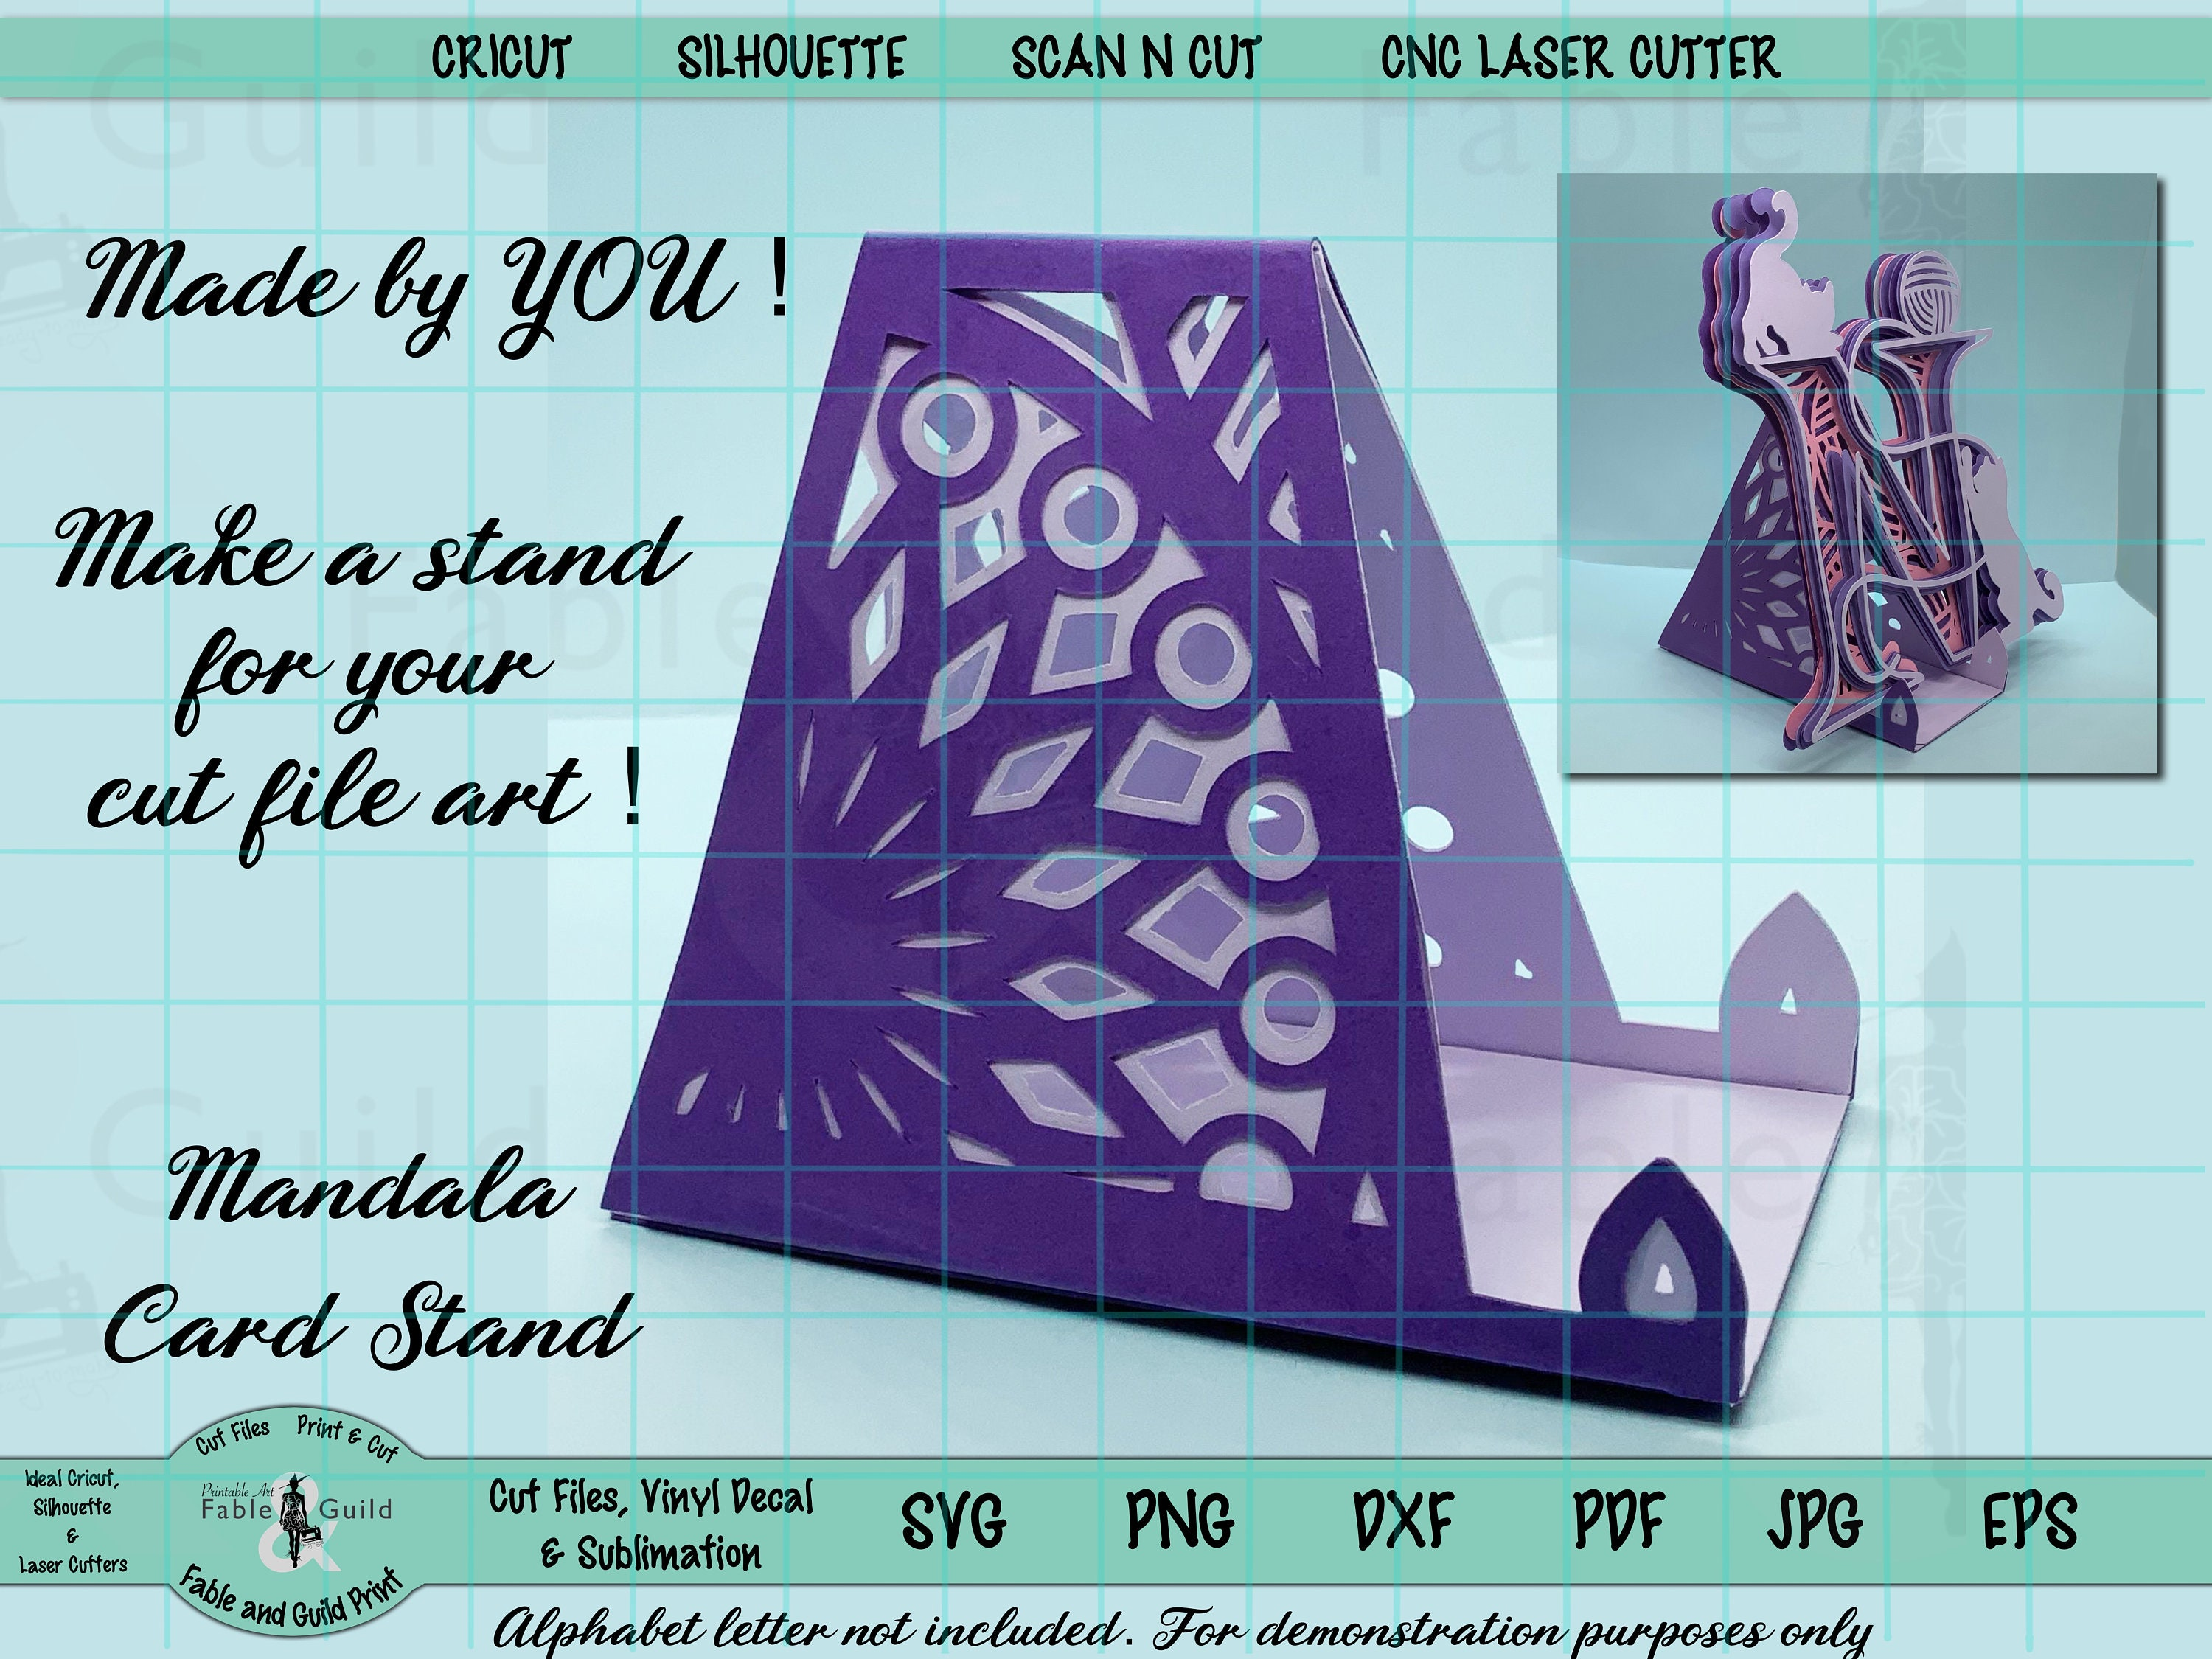 21D Mandala SVG Cut File, Cricut Gift Card Holder Art Stand Silhouette Scan  N Cut Display Photo Place Card Multi layer Template Download PNG With Regard To Card Stand Template